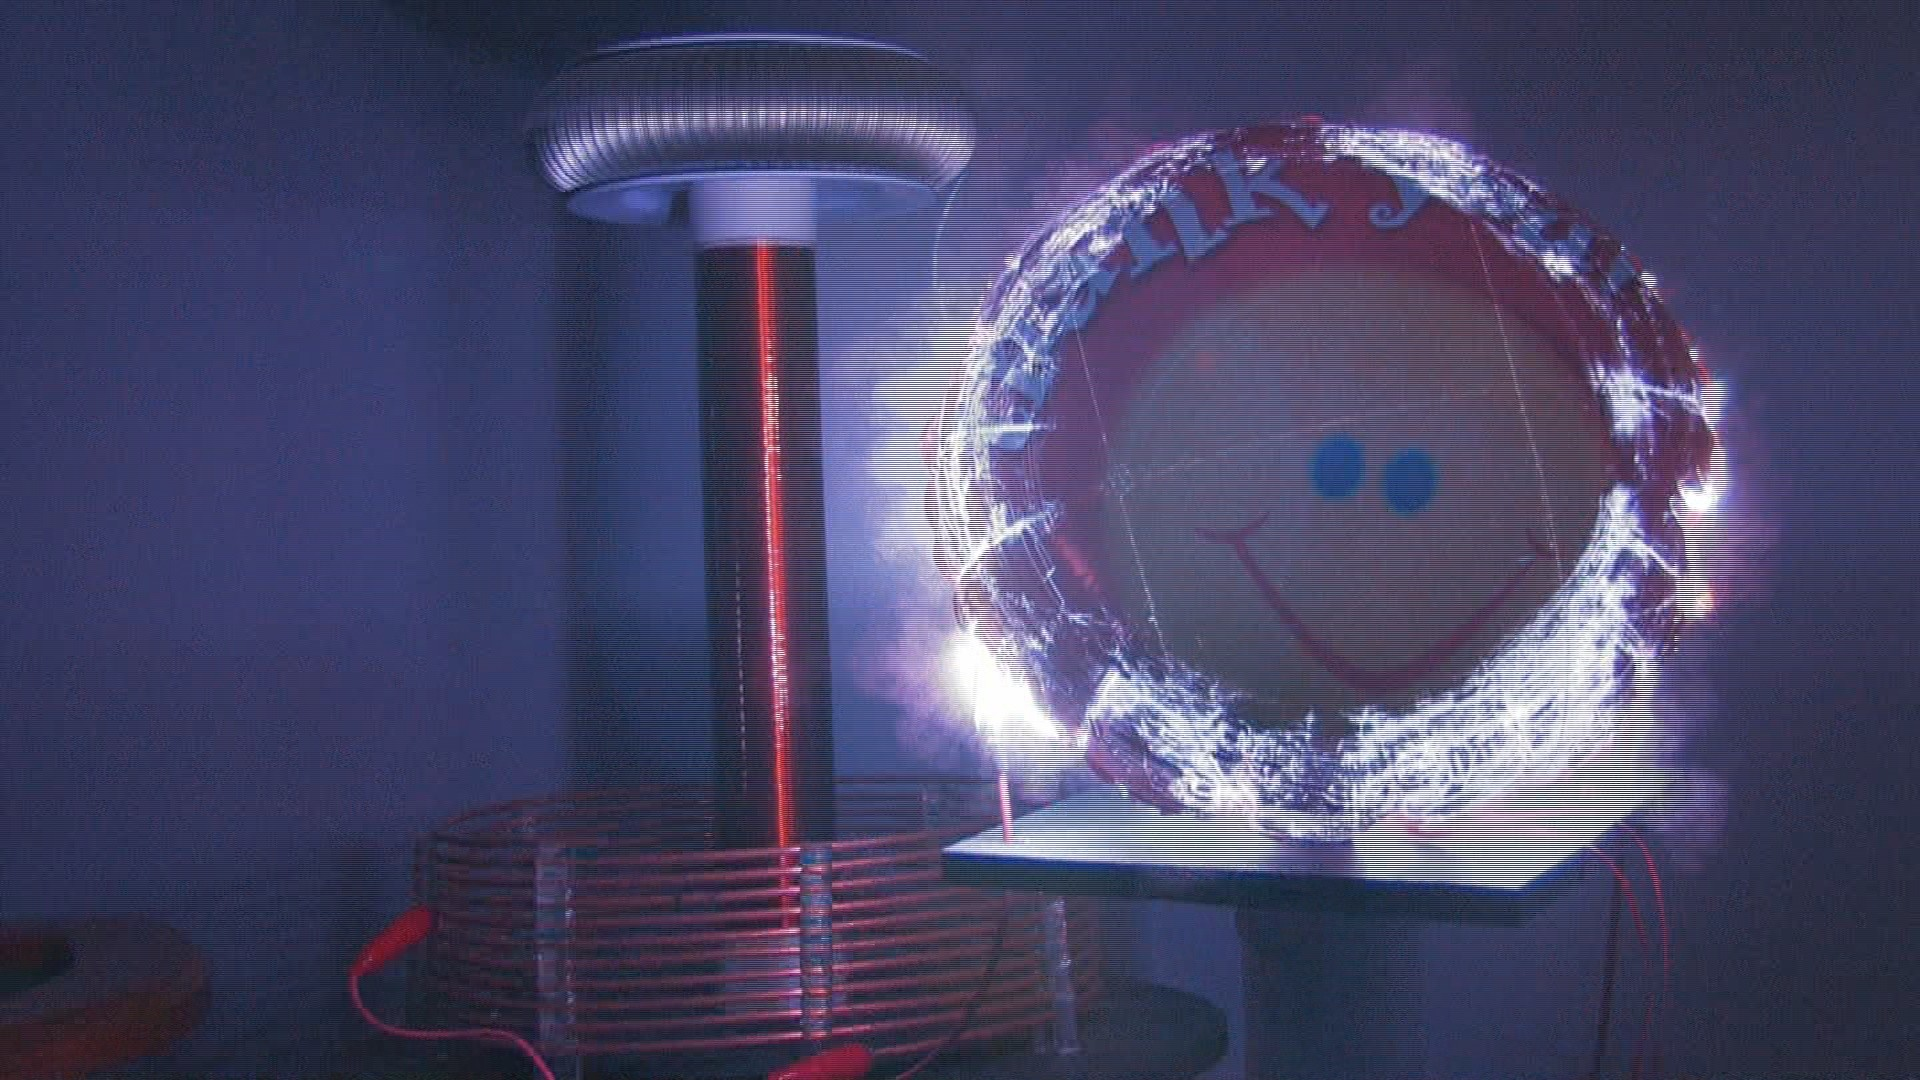 Mylar balloon meet Tesla coil, and streamers from my 250k coil.